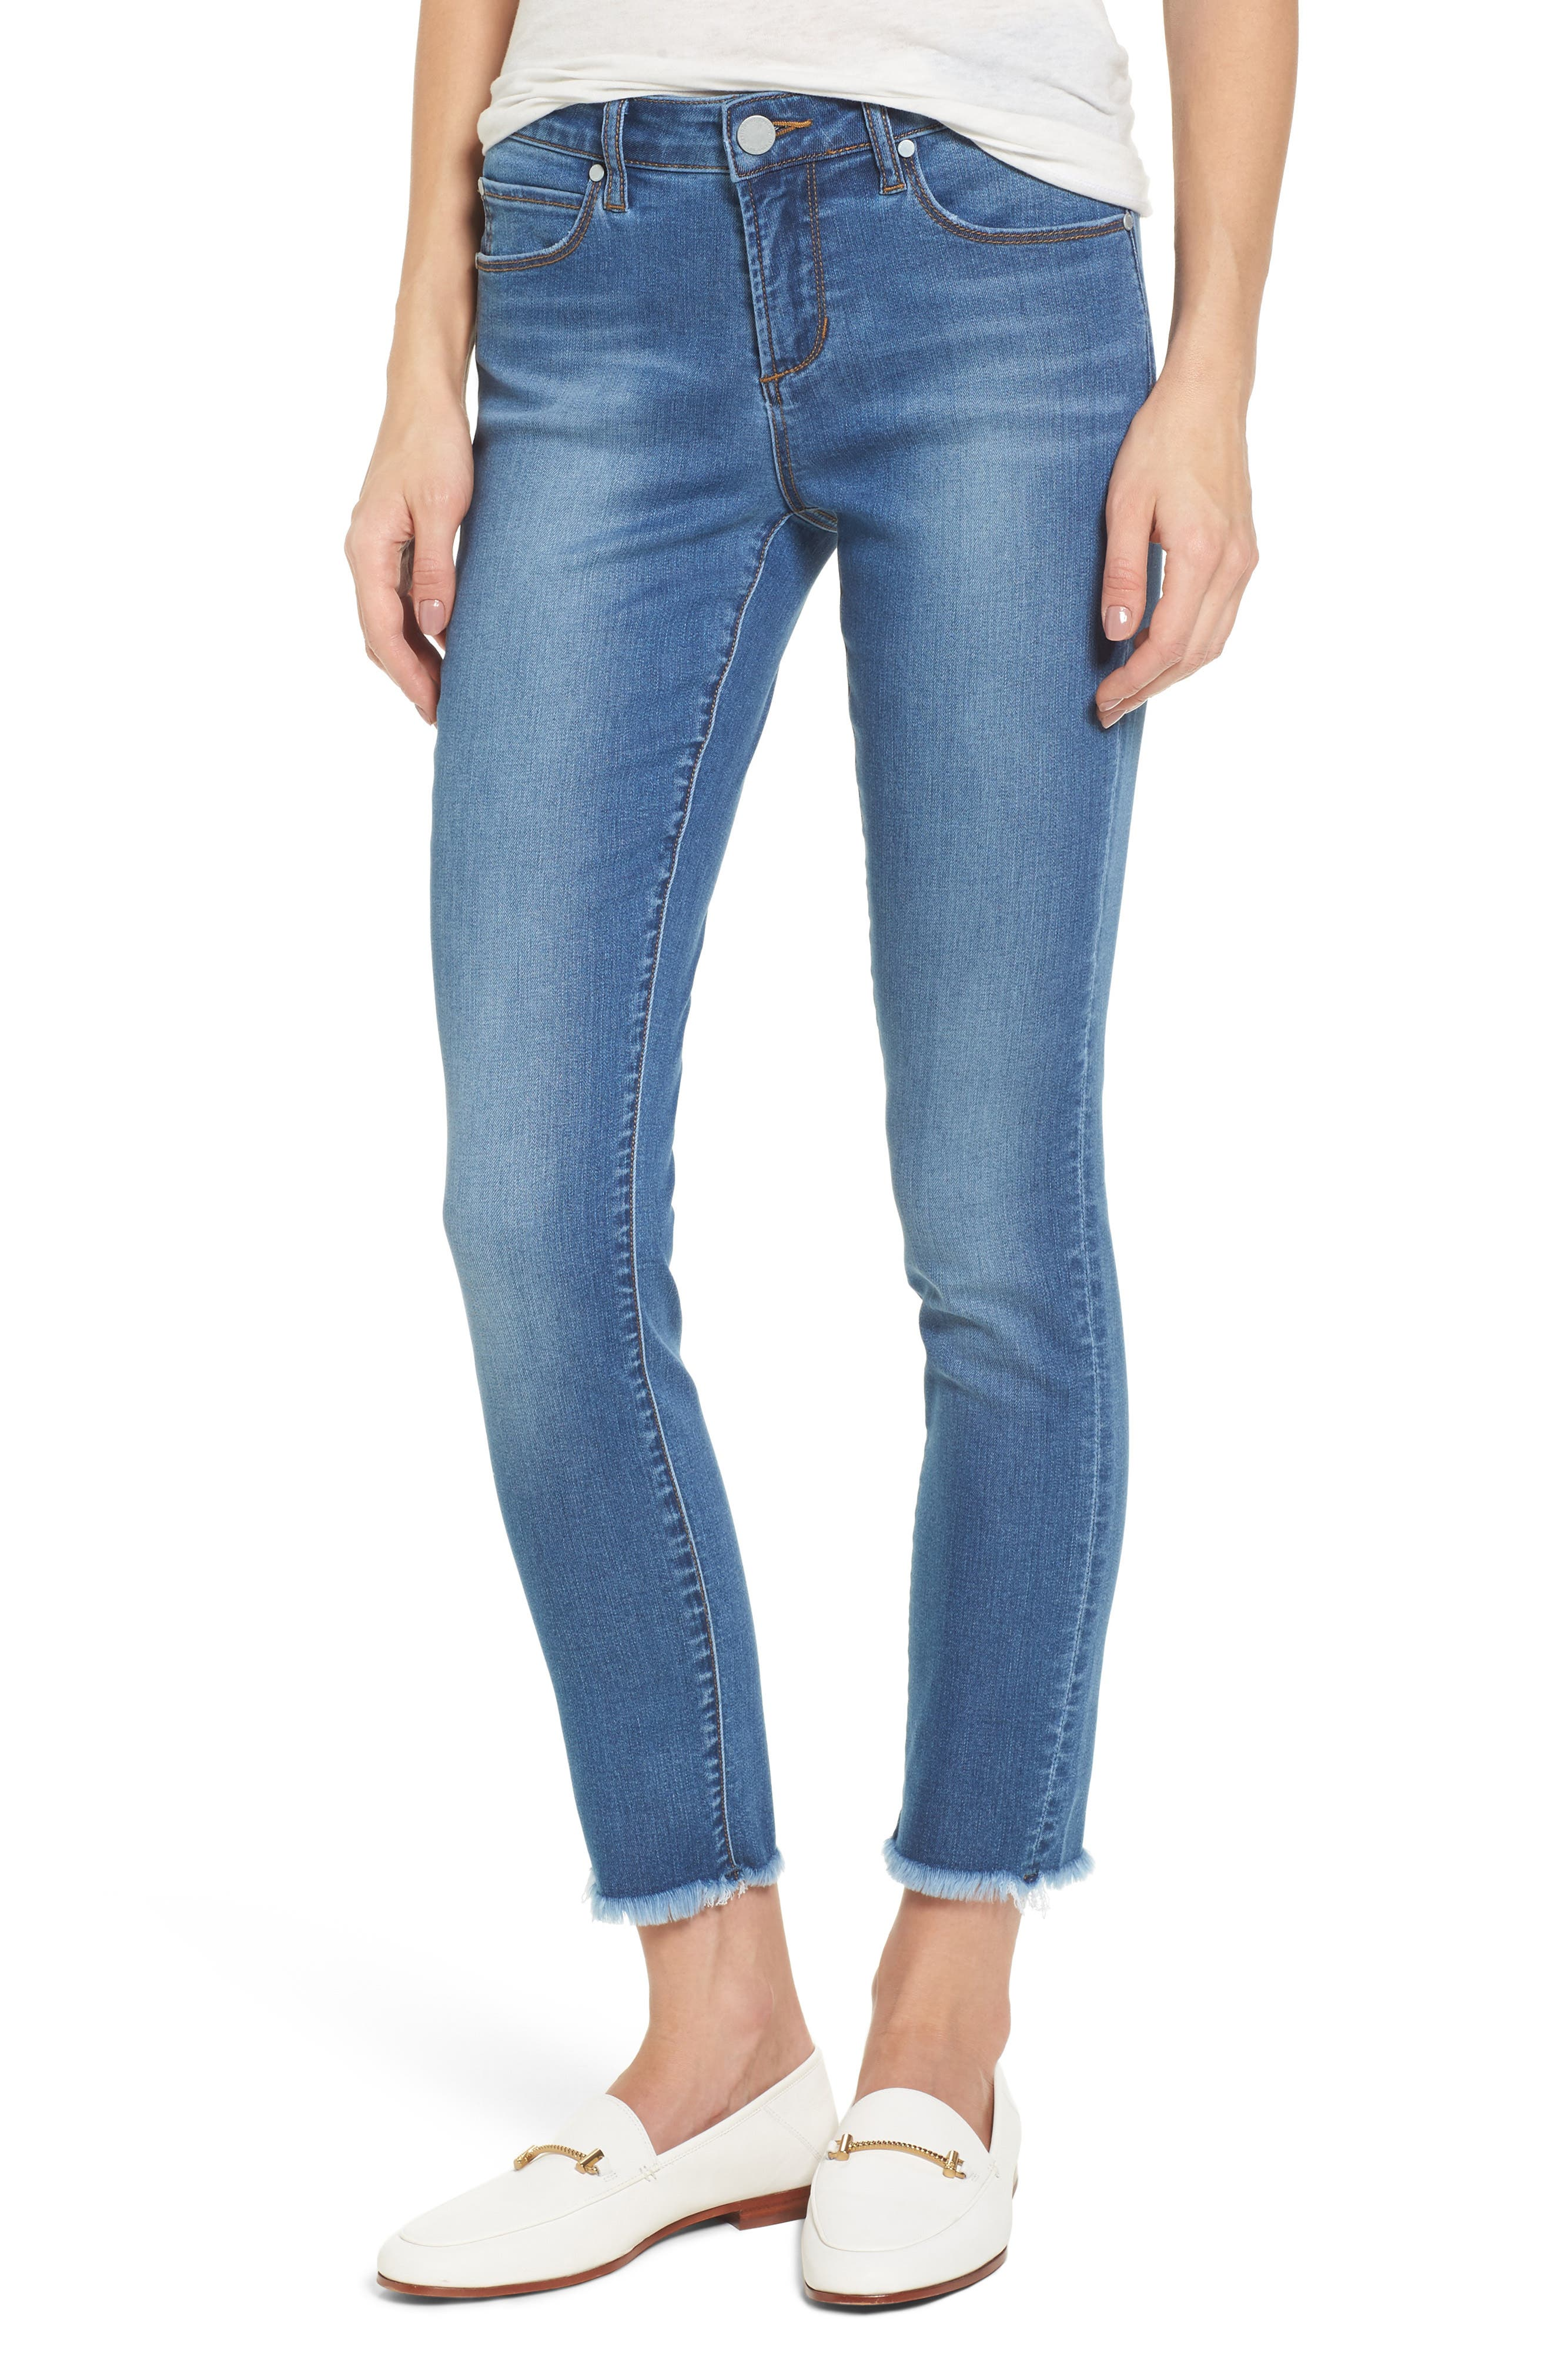 Carly Ankle Skinny Jeans,                             Main thumbnail 1, color,                             Sparta